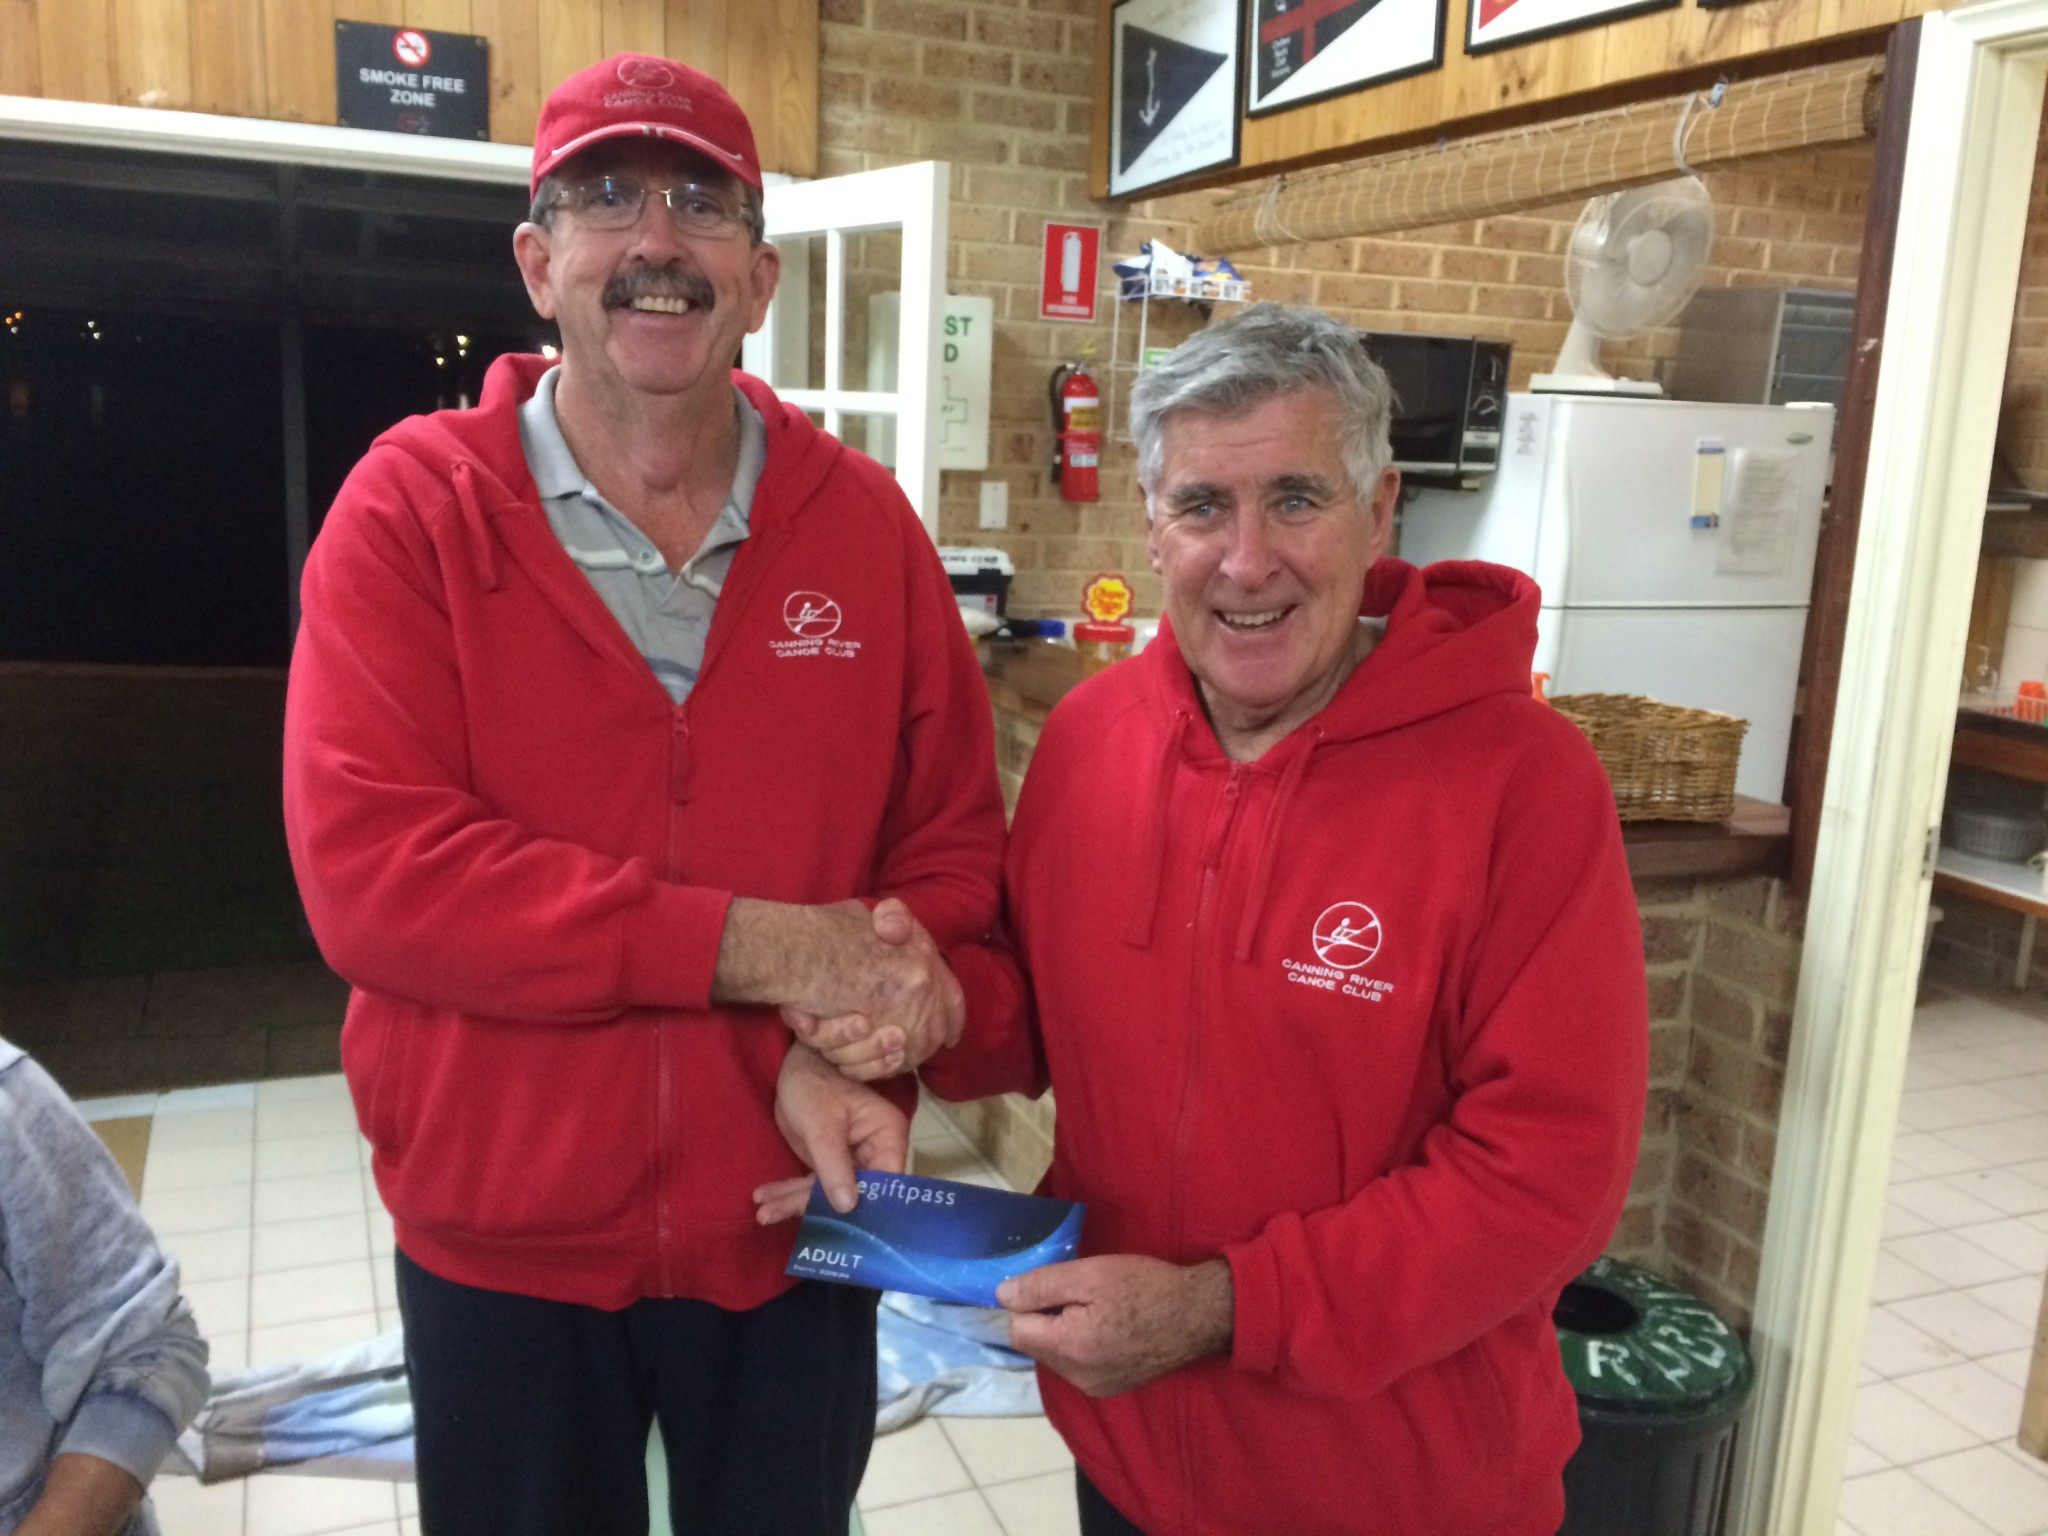 Tuesday 1st September 2015 : Club member Joe Wilson presenting tonights winner Dave Griffiths with a movie voucher